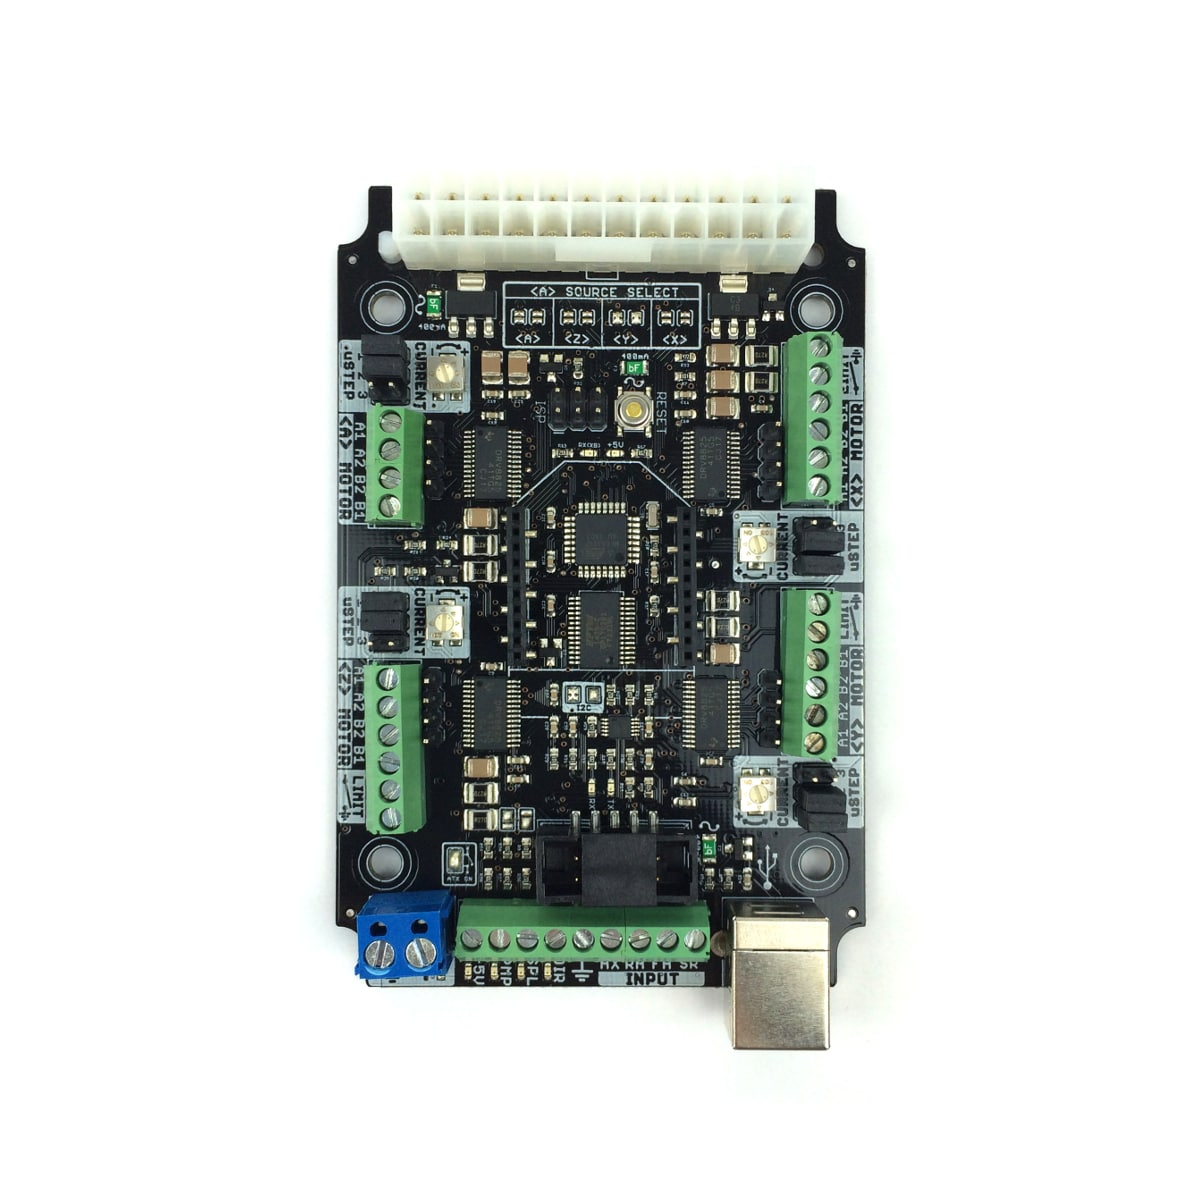 Cnc Xpro V3 Grbl Controller Board From Ooznest Power Wiring Diagram